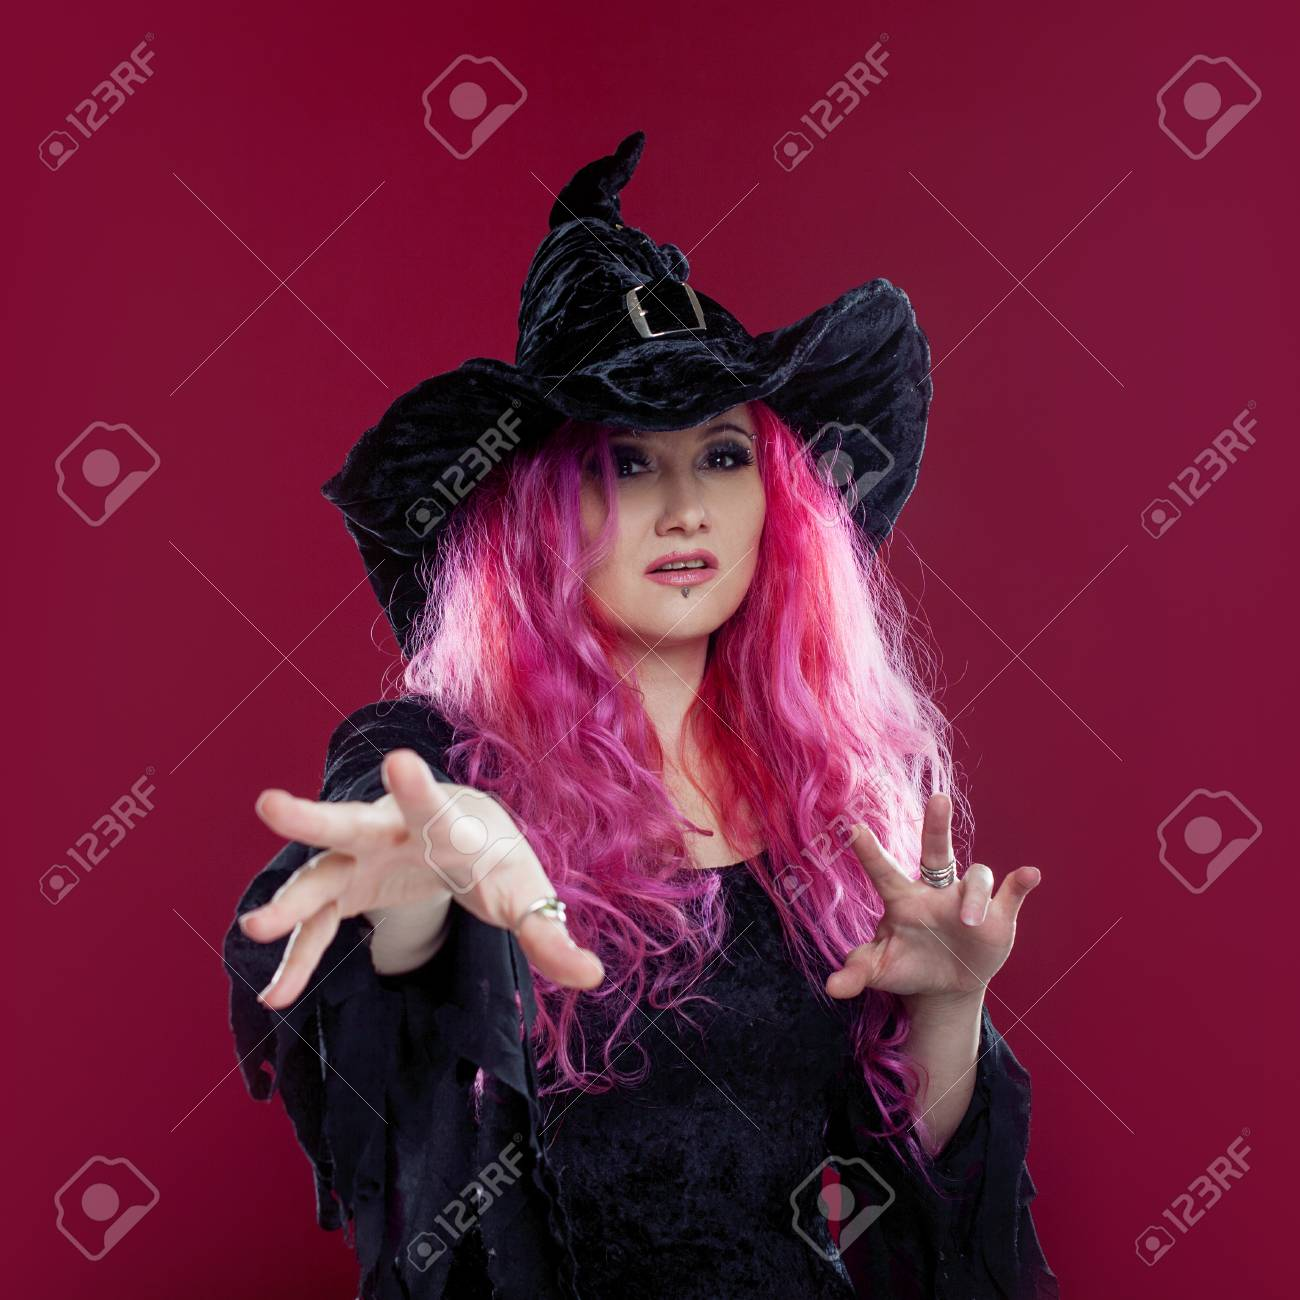 Attractive woman in witches hat and costume with red hair performs magic on a pink background  sc 1 st  123RF.com & Attractive Woman In Witches Hat And Costume With Red Hair Performs ...